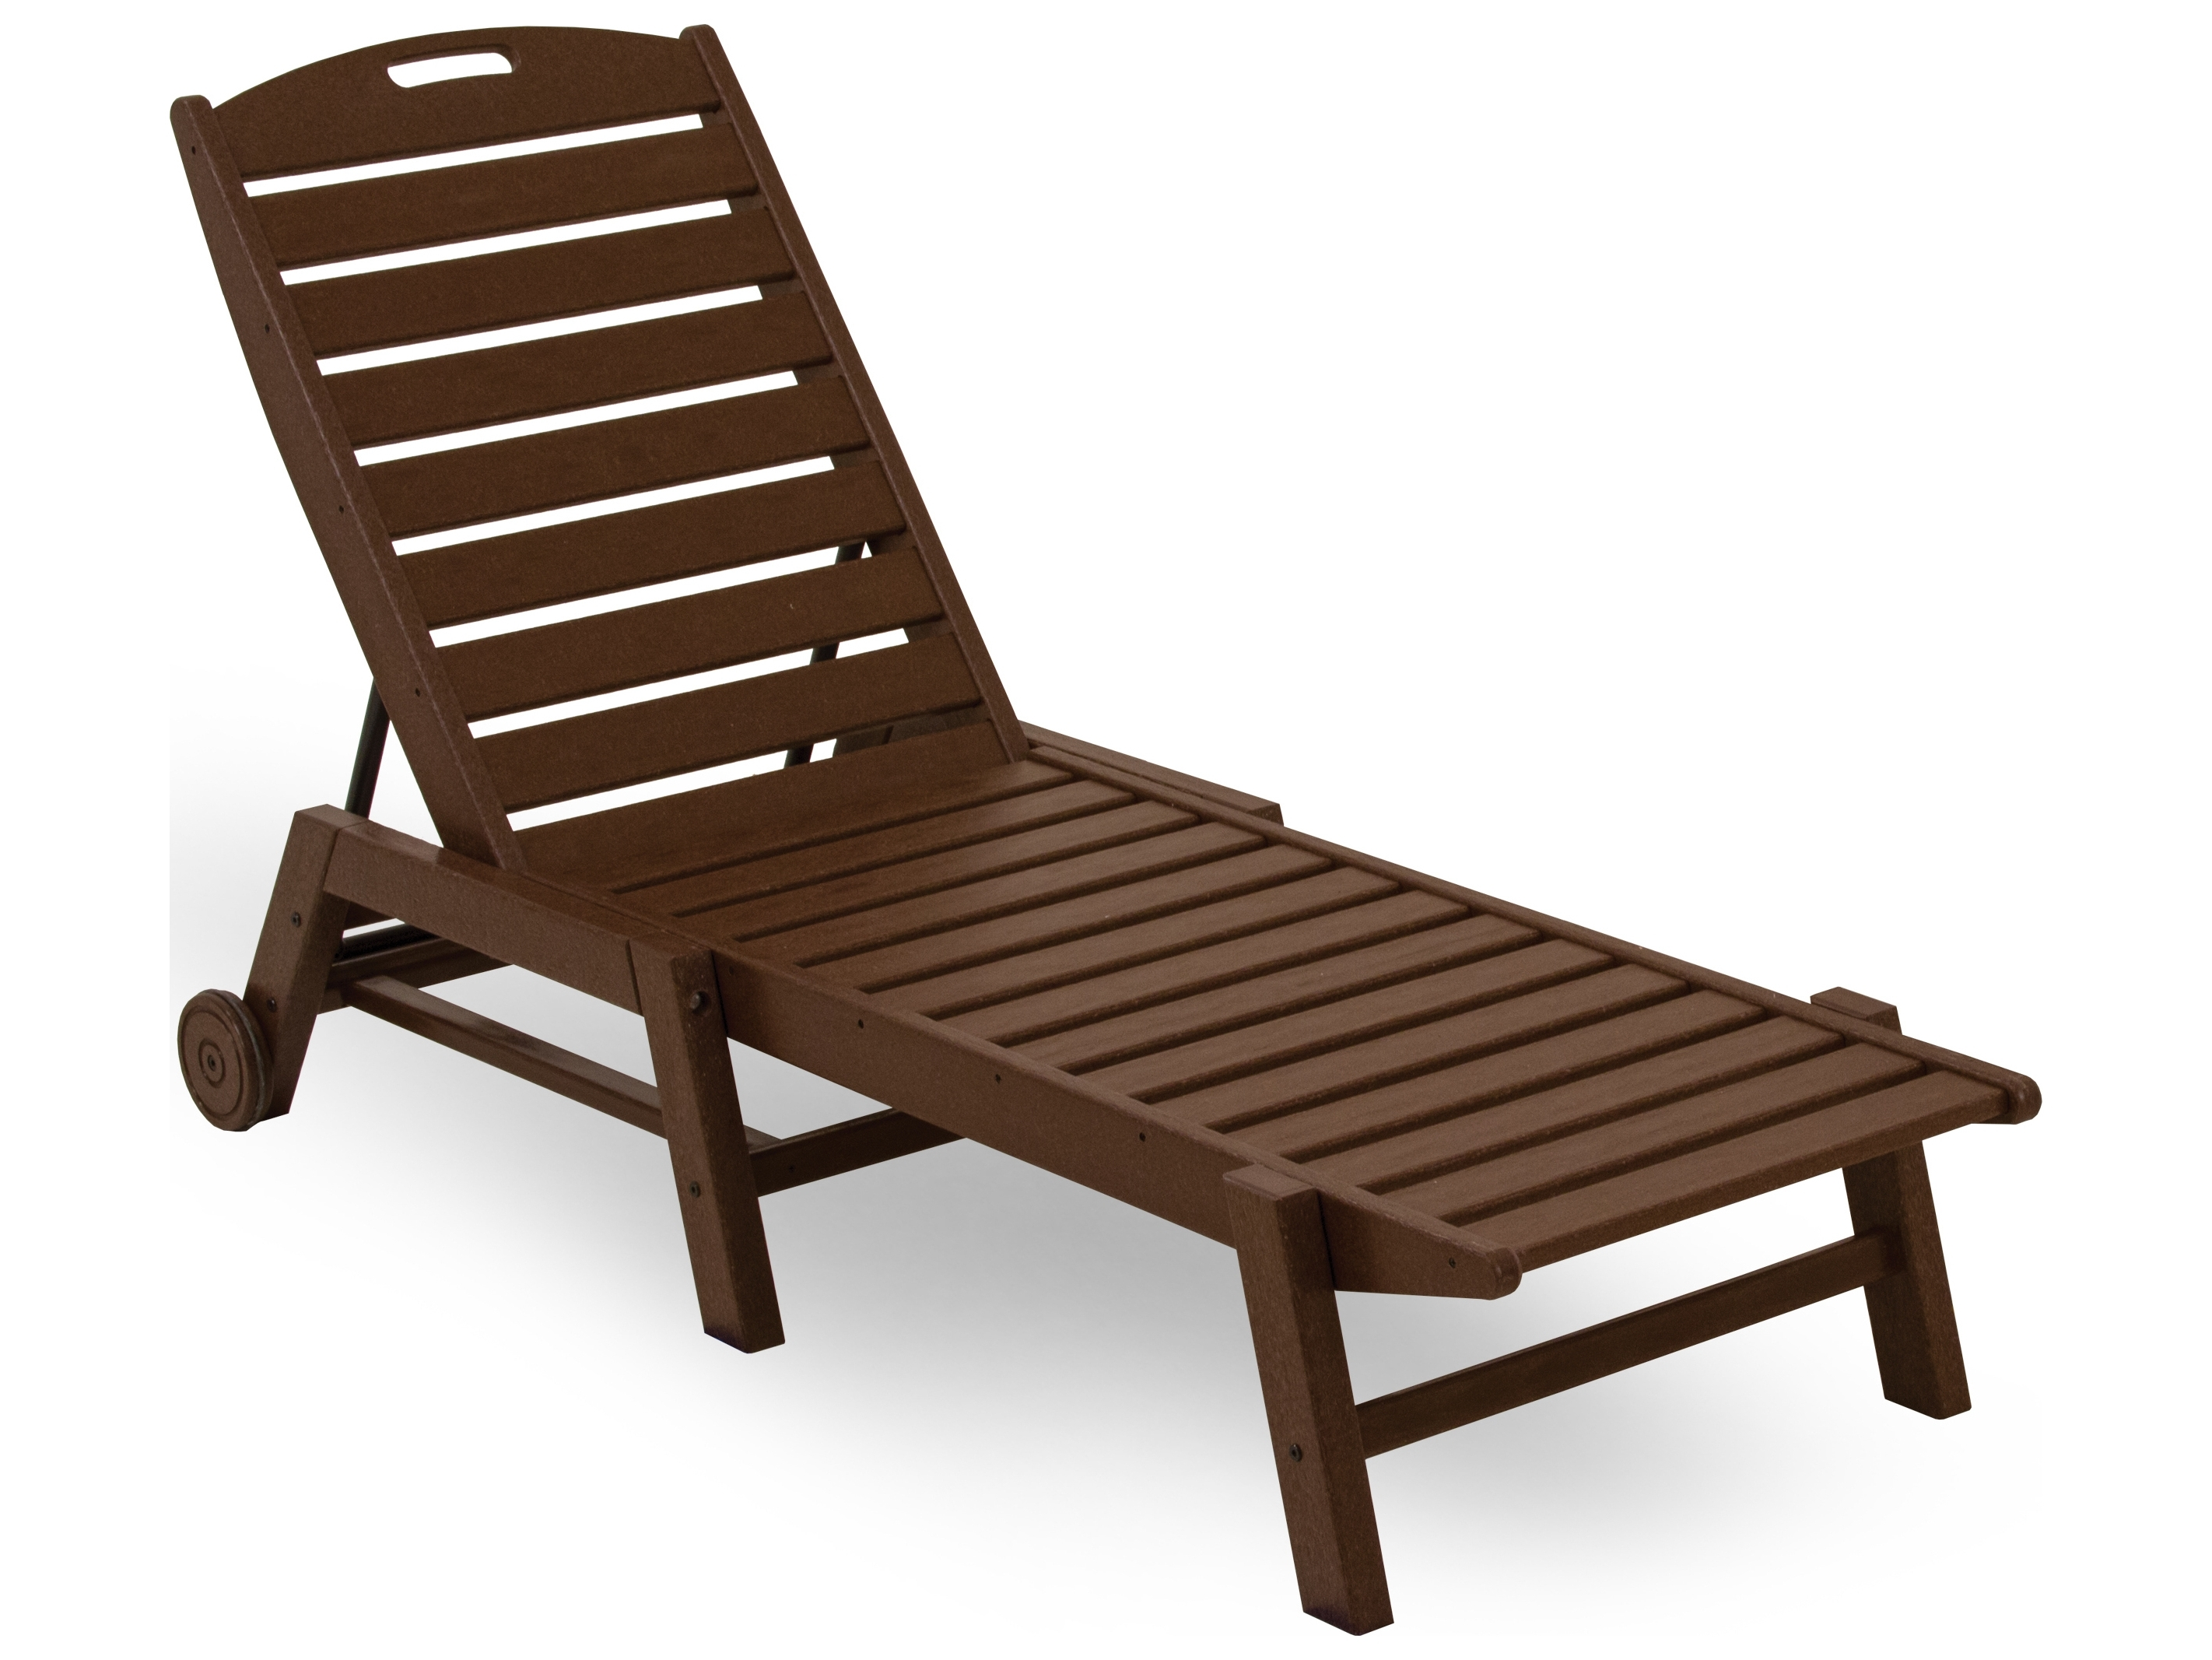 Luxury Outdoor Chaise Lounge Chairs For Best And Newest Brown Plastic Lounge Chairs • Lounge Chairs Ideas (View 7 of 15)